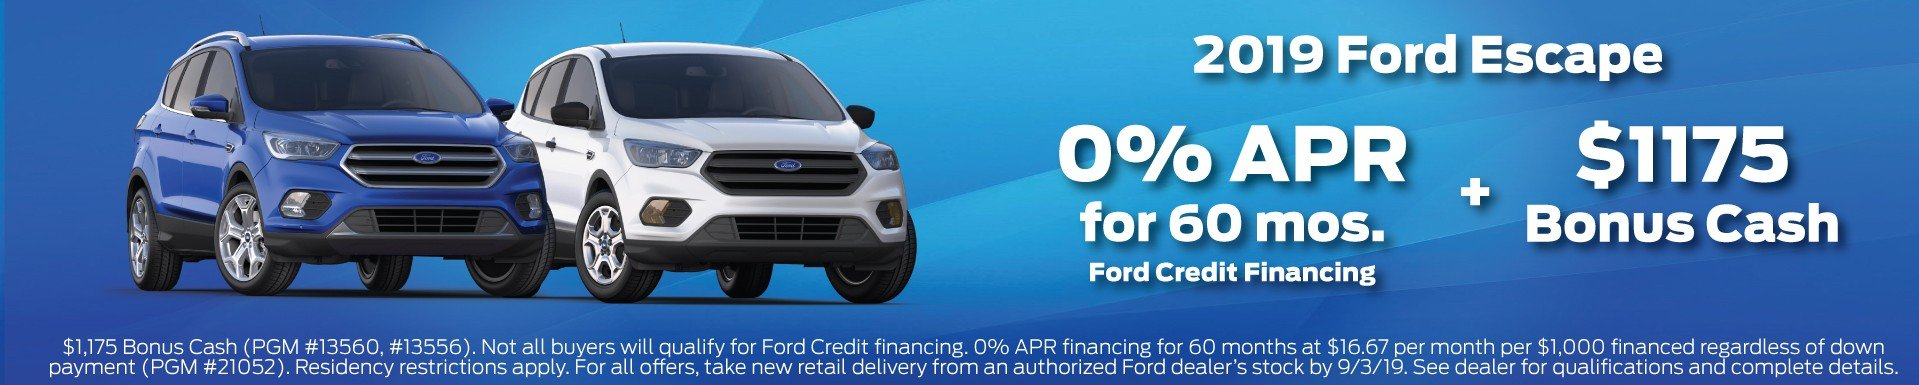 2019 Ford Escape Offer 7-2019